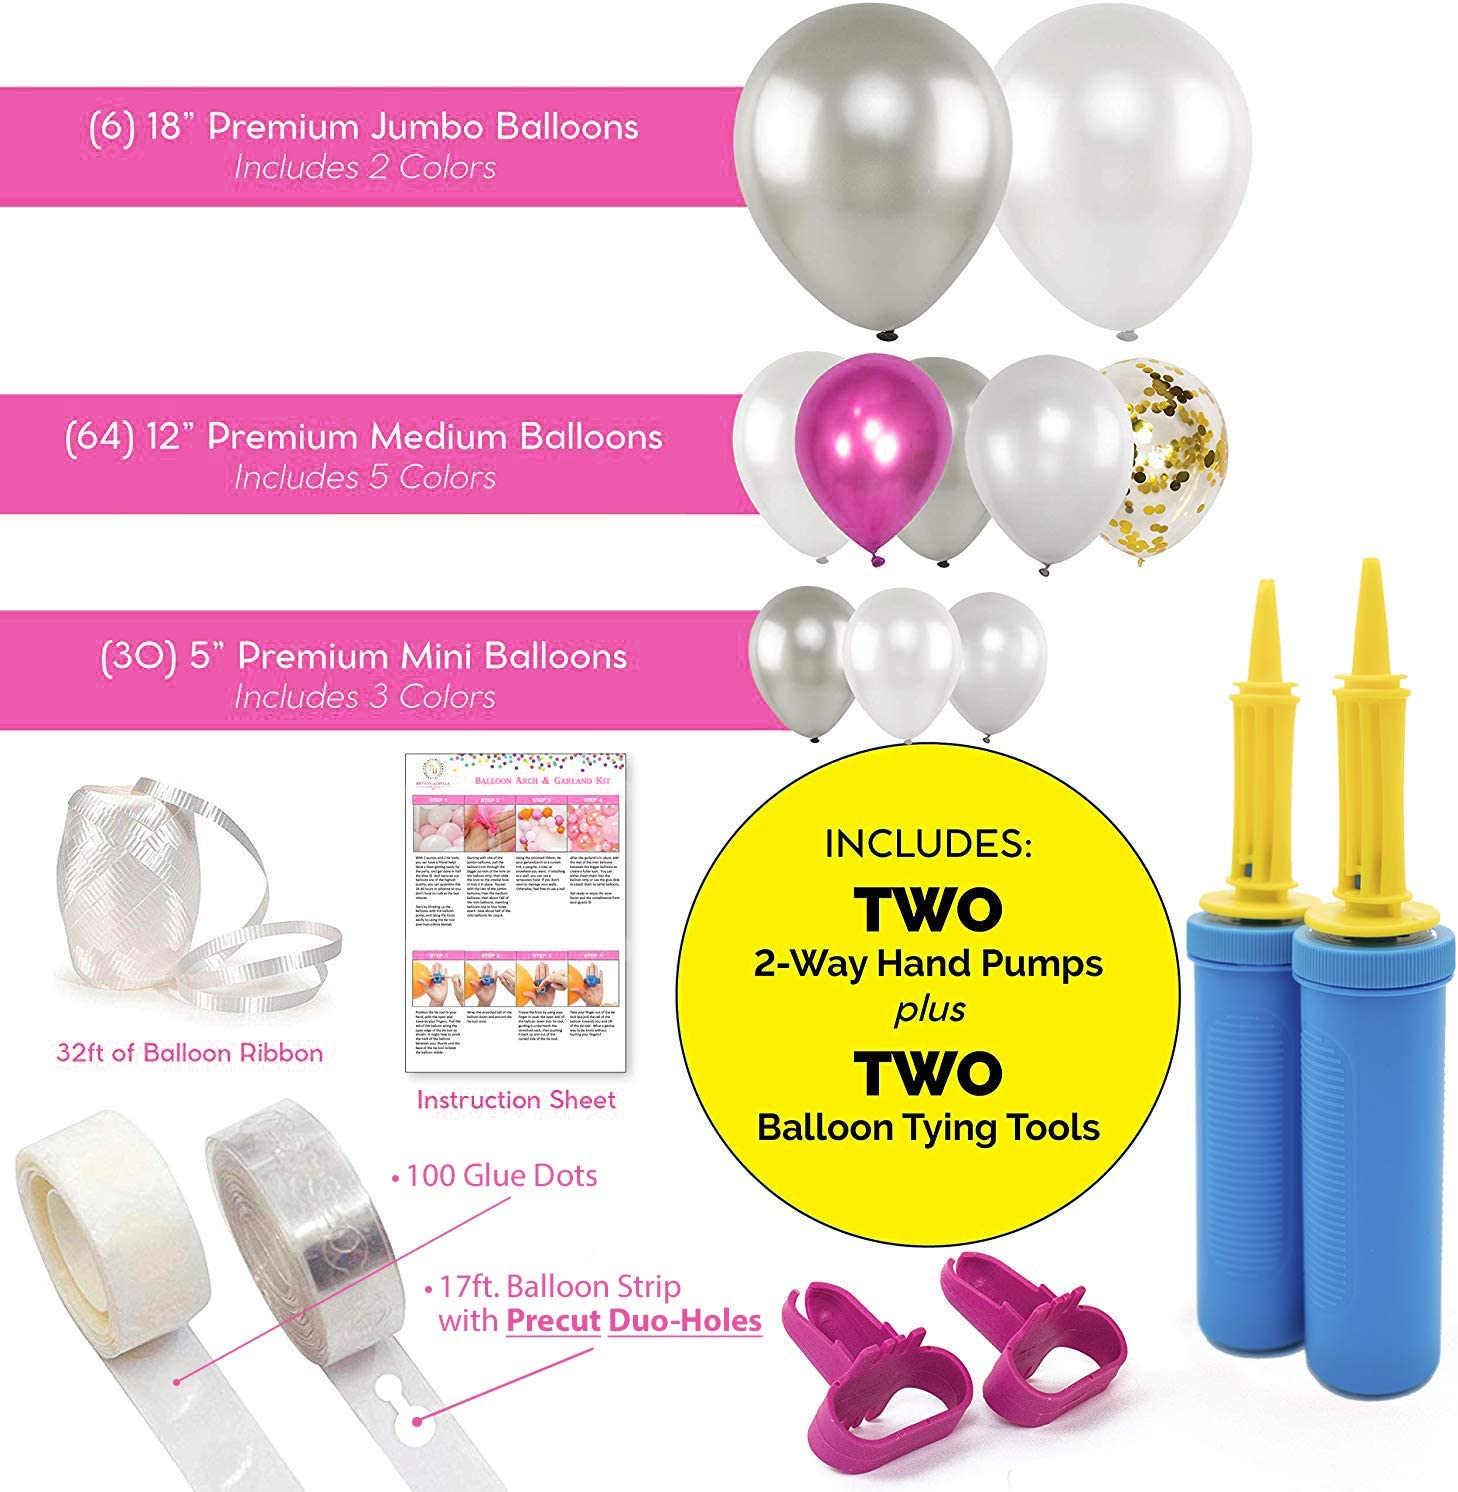 2 Tools Birthdays/&More Decorating Tape Strip Large//Med//Small Bridal//Baby Showers Bachelorette Parties 100 Gold Chrome//White//Confetti Weddings Bryson/&Bella Balloon Arch Garland Kit: 2 Pumps